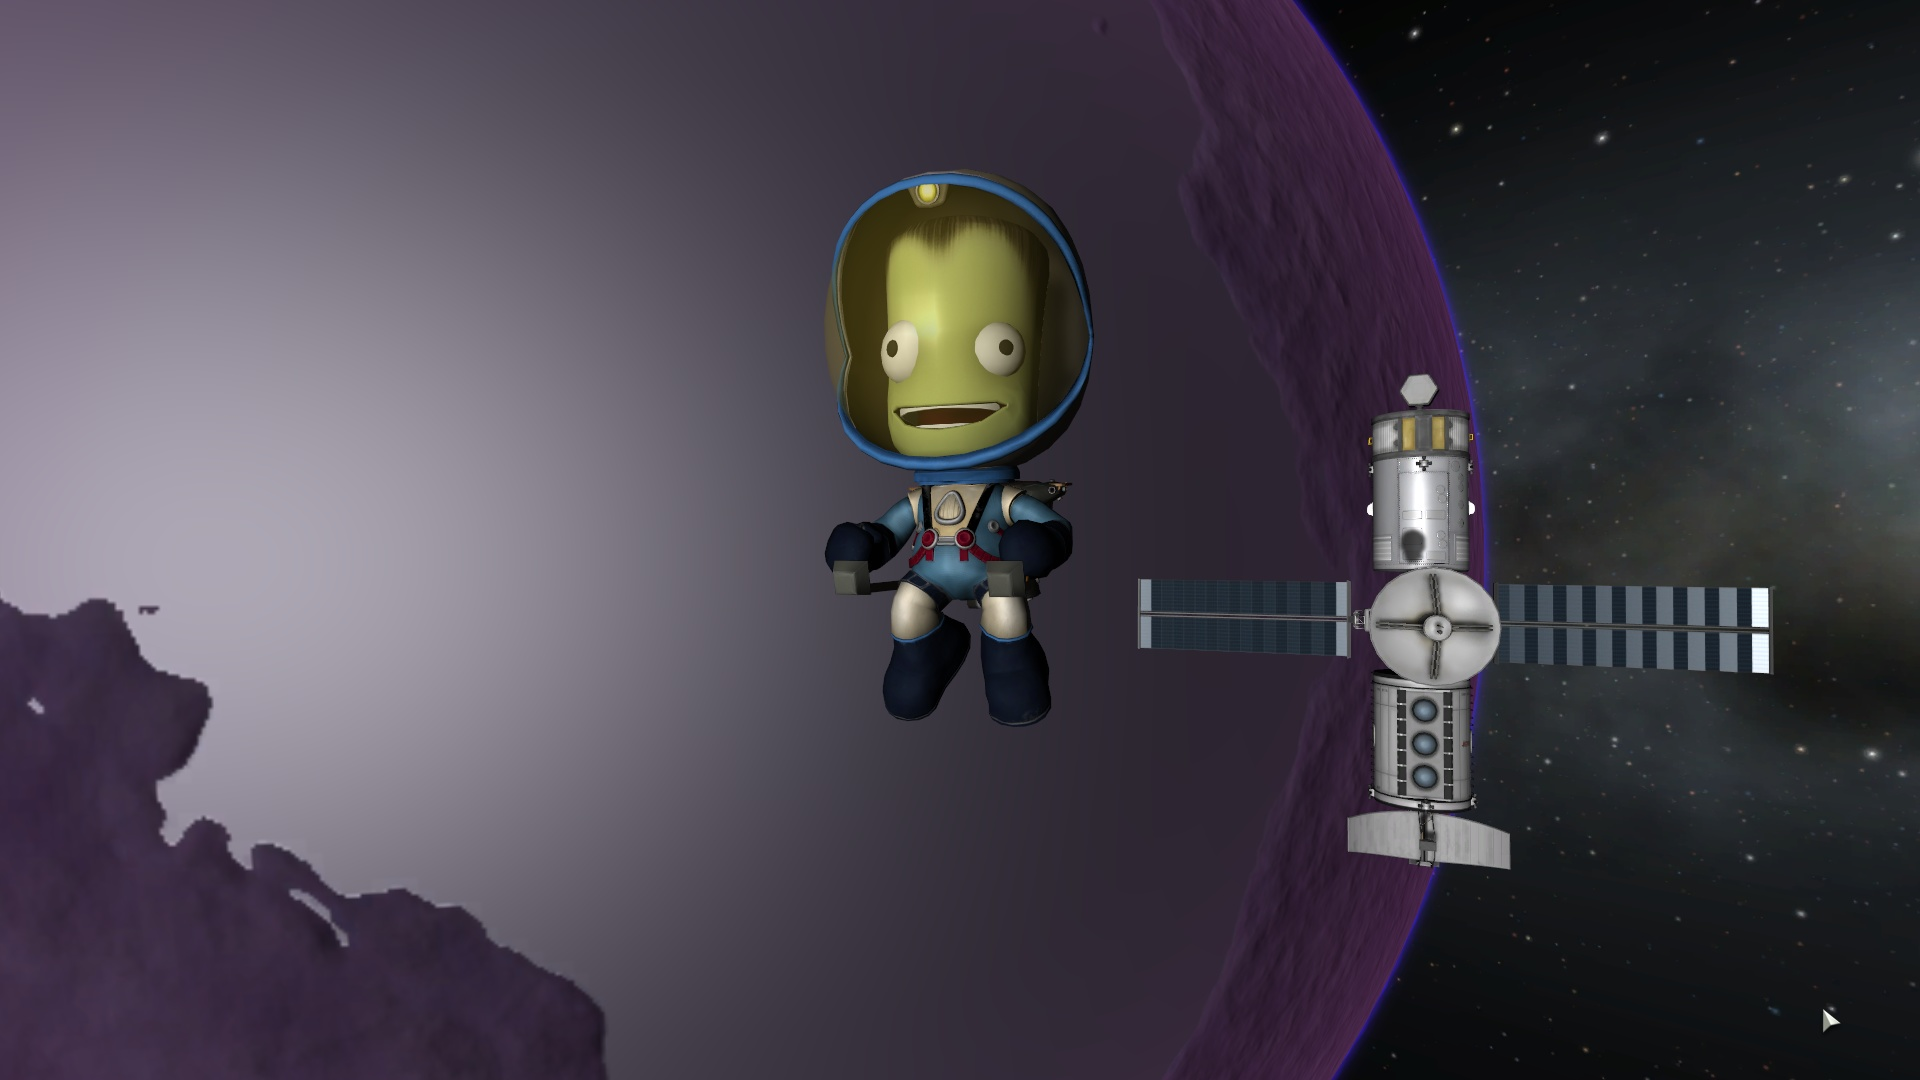 kerbal space program free download - HD 1920×1080